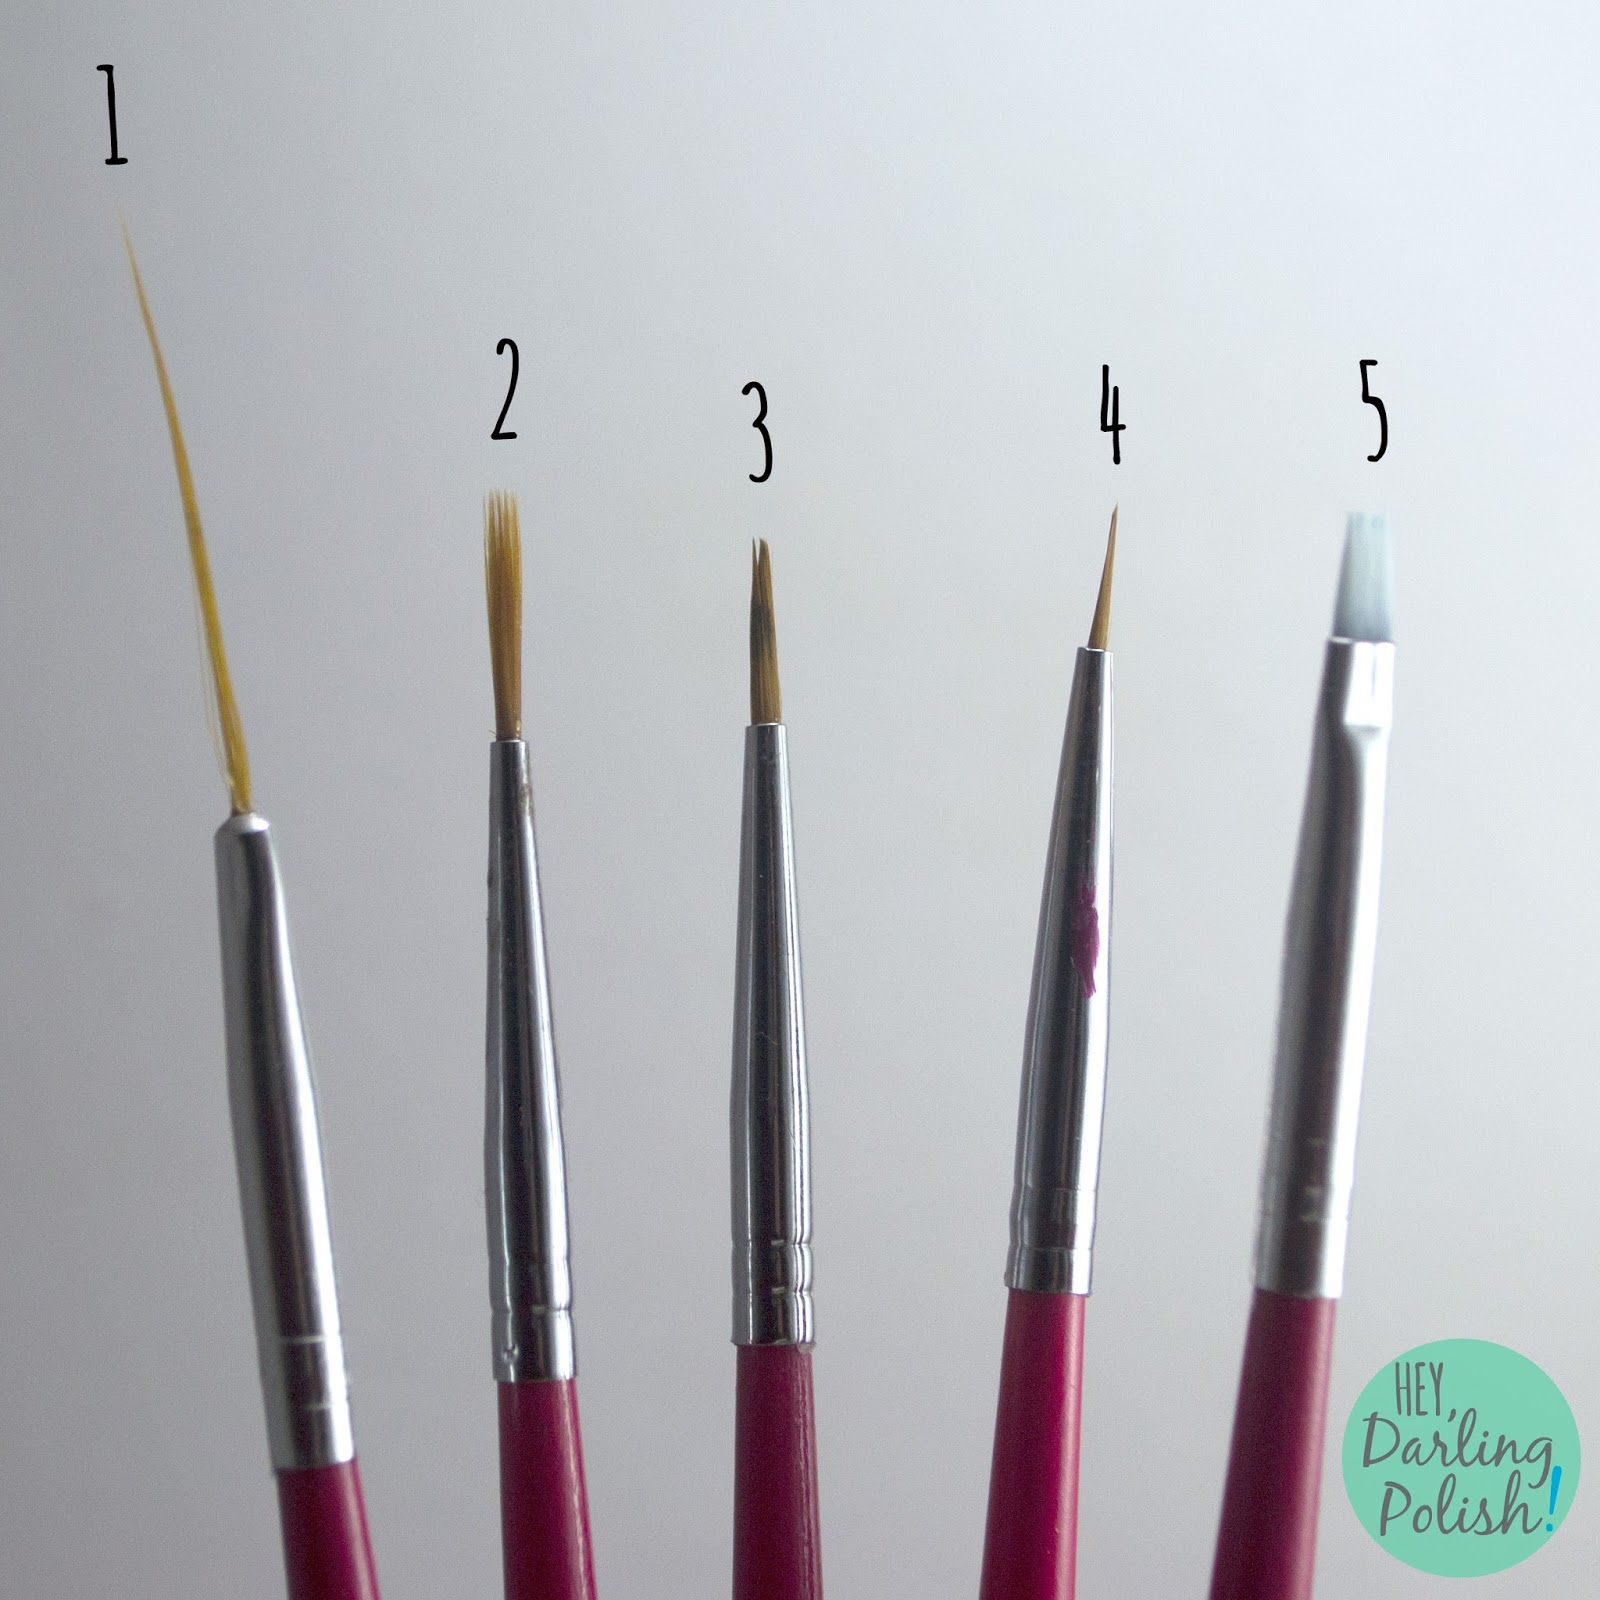 born pretty store, hey darling polish, nail art brushes, review